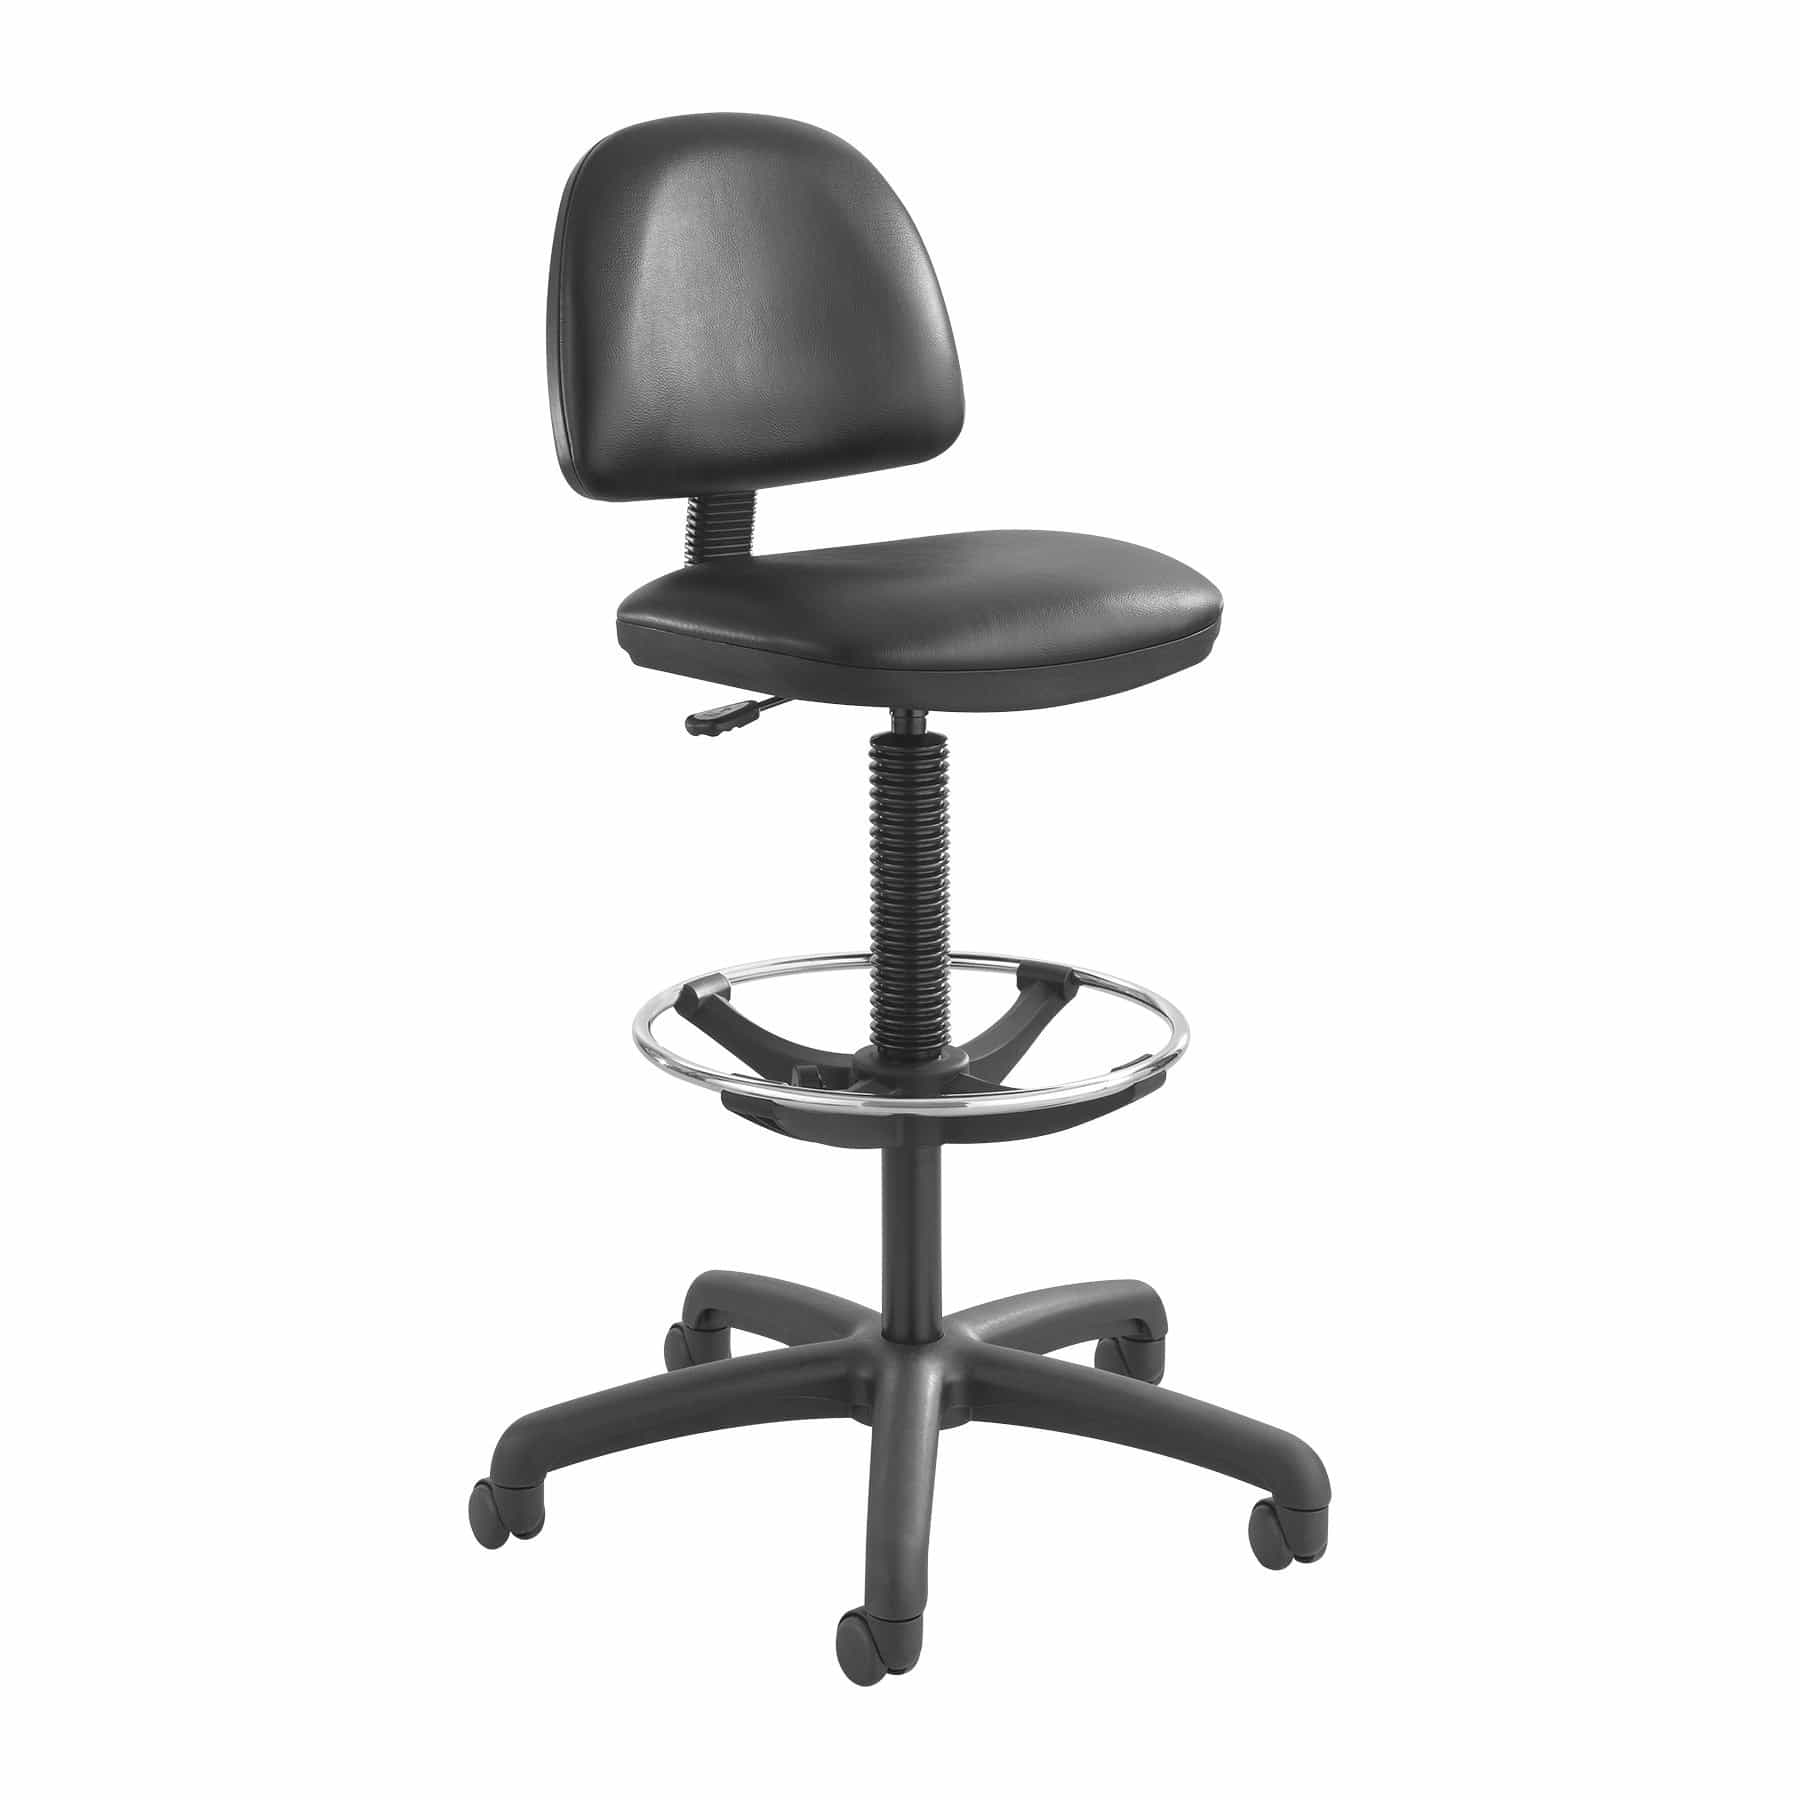 bedinhome - 3406BL Office Work Precision Vinyl Swivel Extended-Height Black Drafting Chair With Footring & Dual Hooded Casters - Safco - Drafting Chair